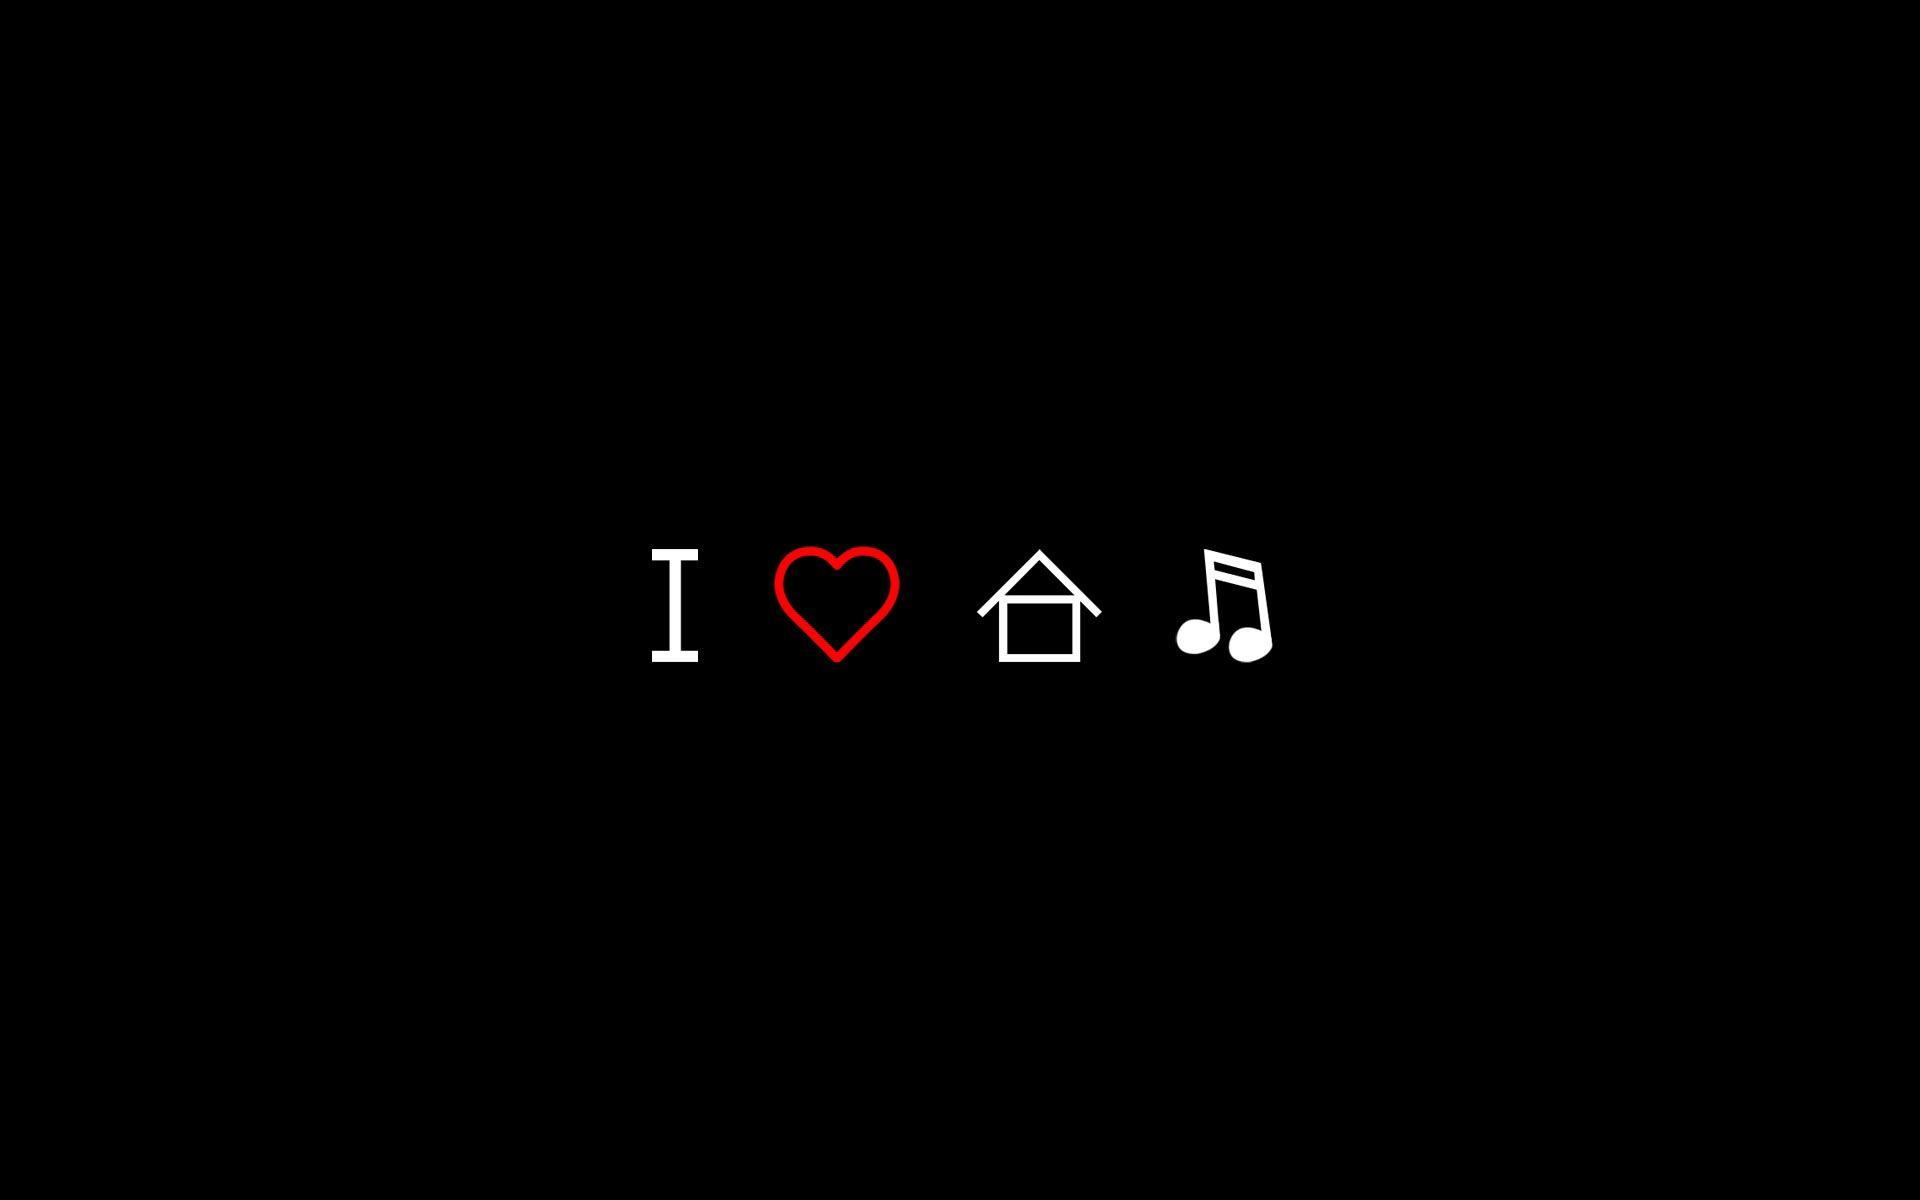 House music wallpapers wallpaper cave for I love house music